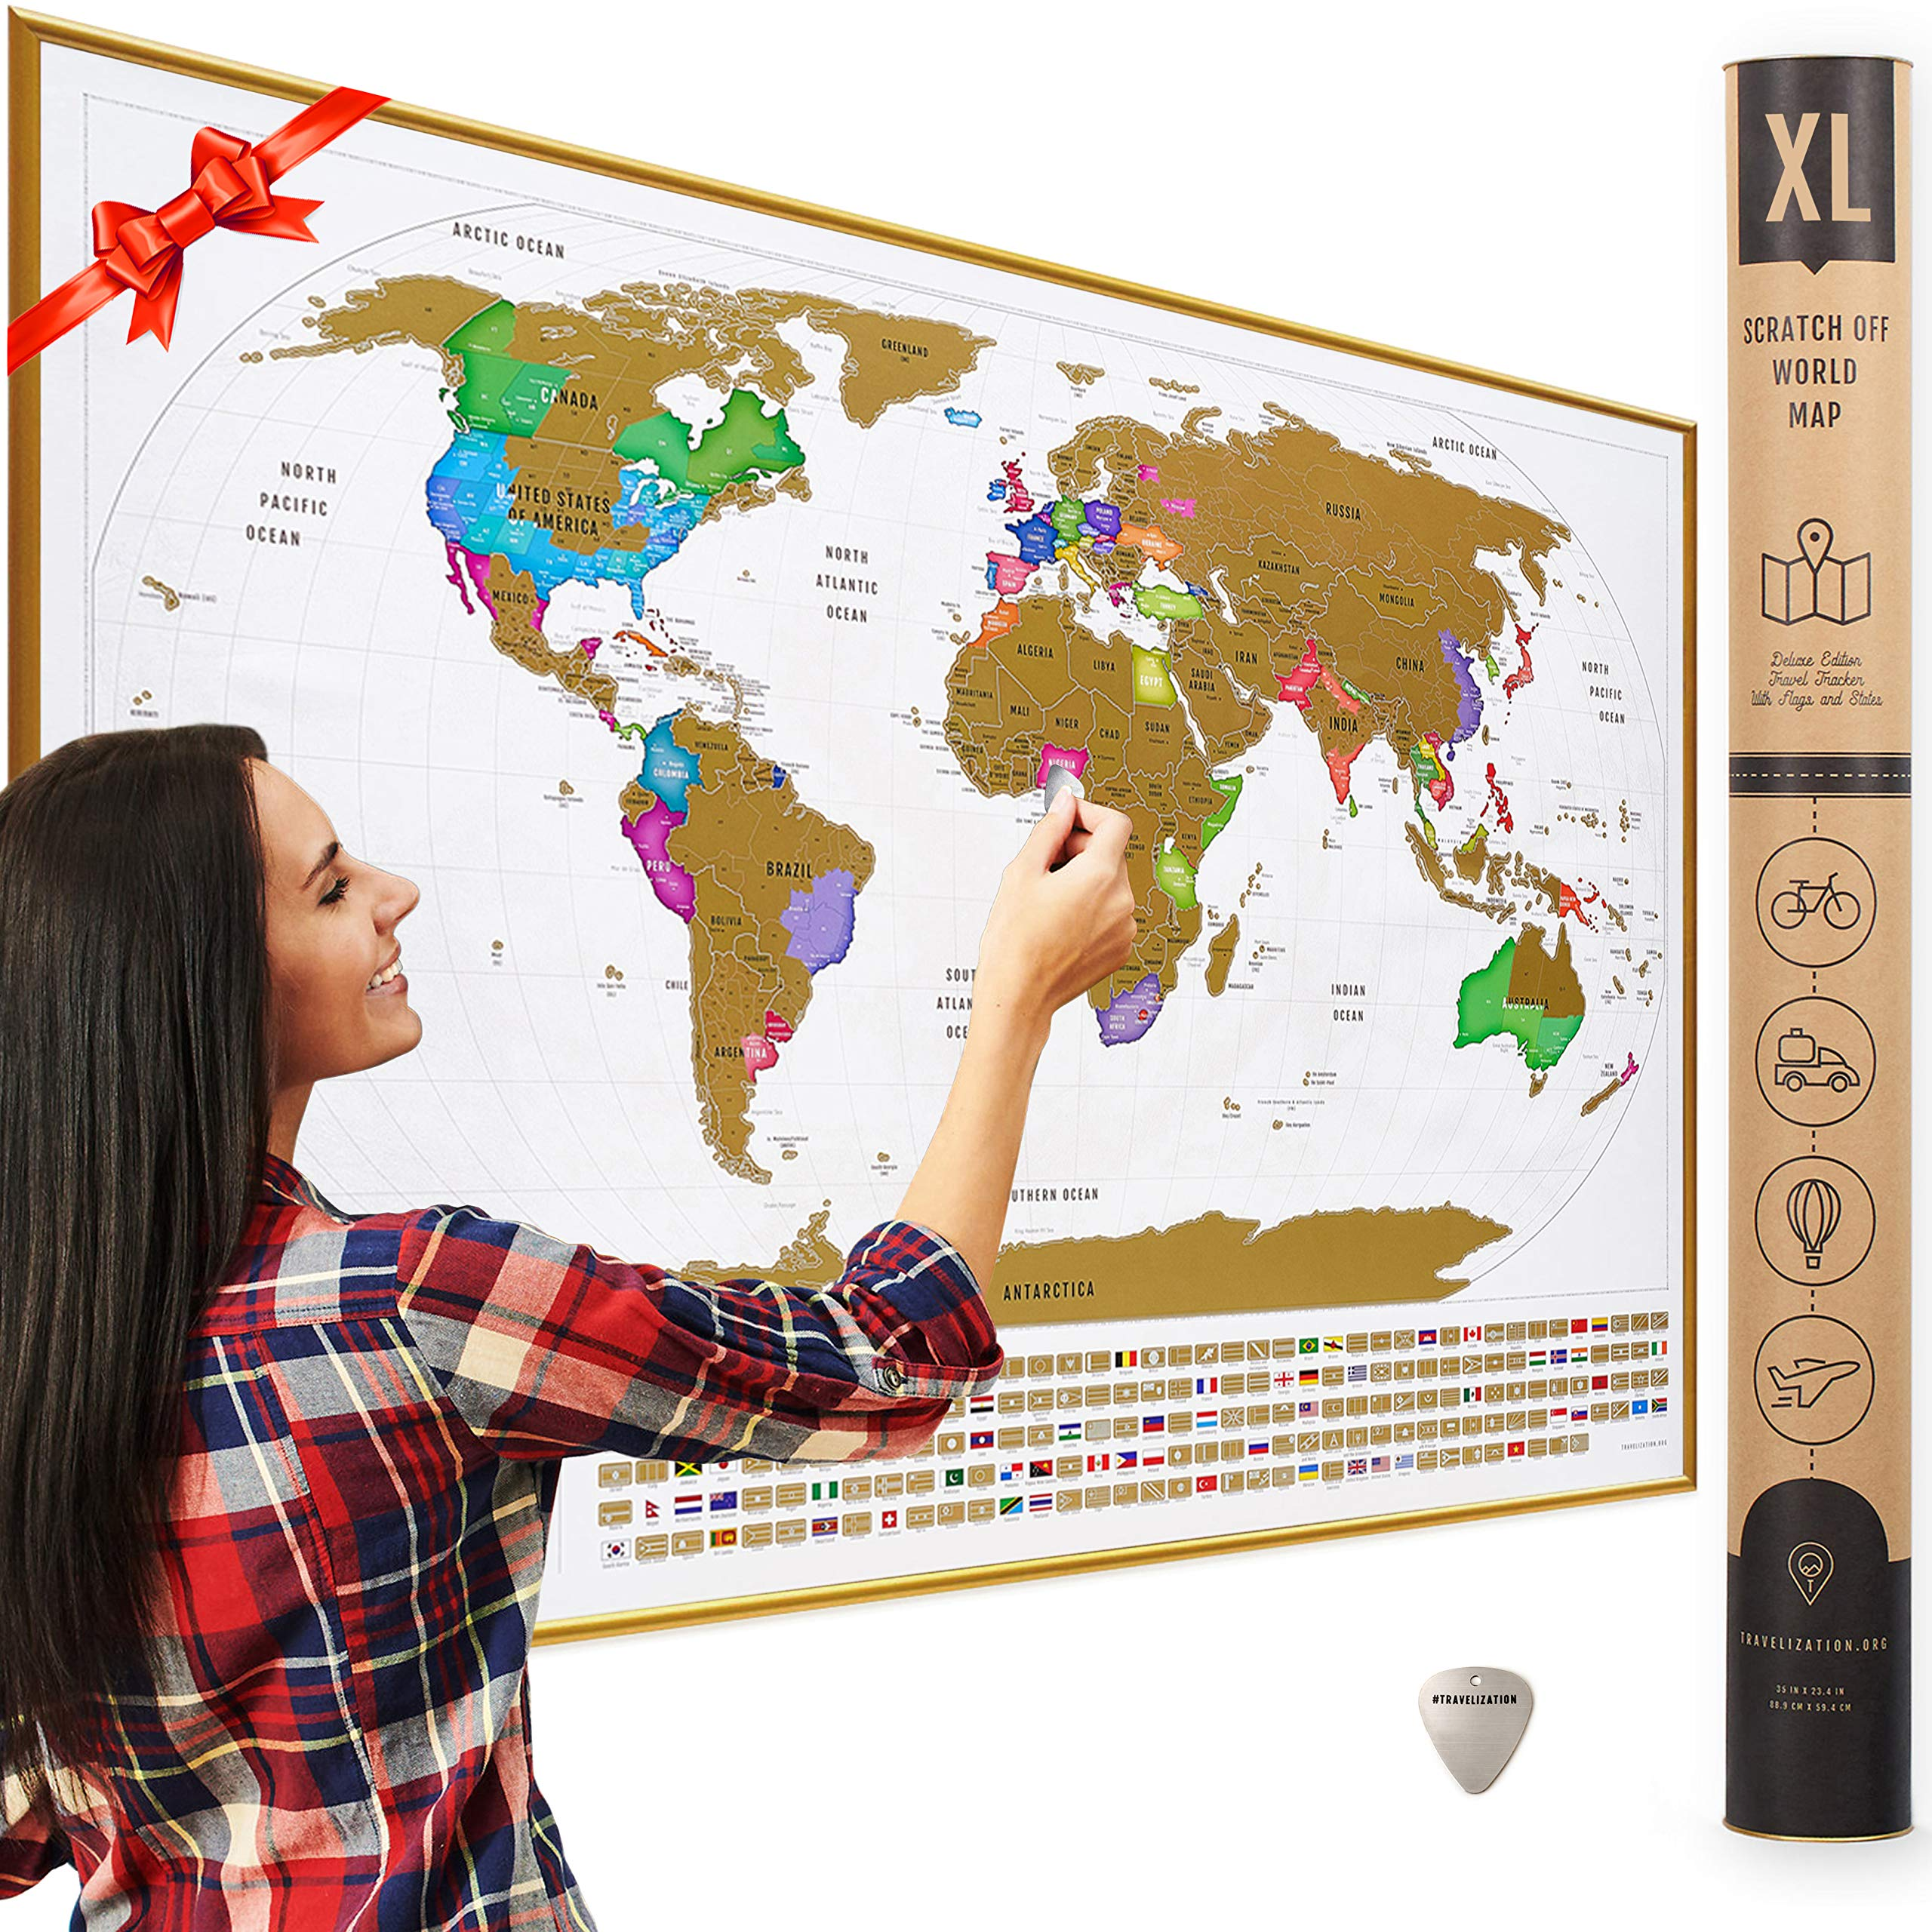 XL Scratch Off Map of The World with Flags - Made in Europe 36 x 24'' Large Scratch Off World Map Poster with US States & Flags - Original Travel World Map Scratch Off, Travel Decor, Gift for Travelers by Travelization